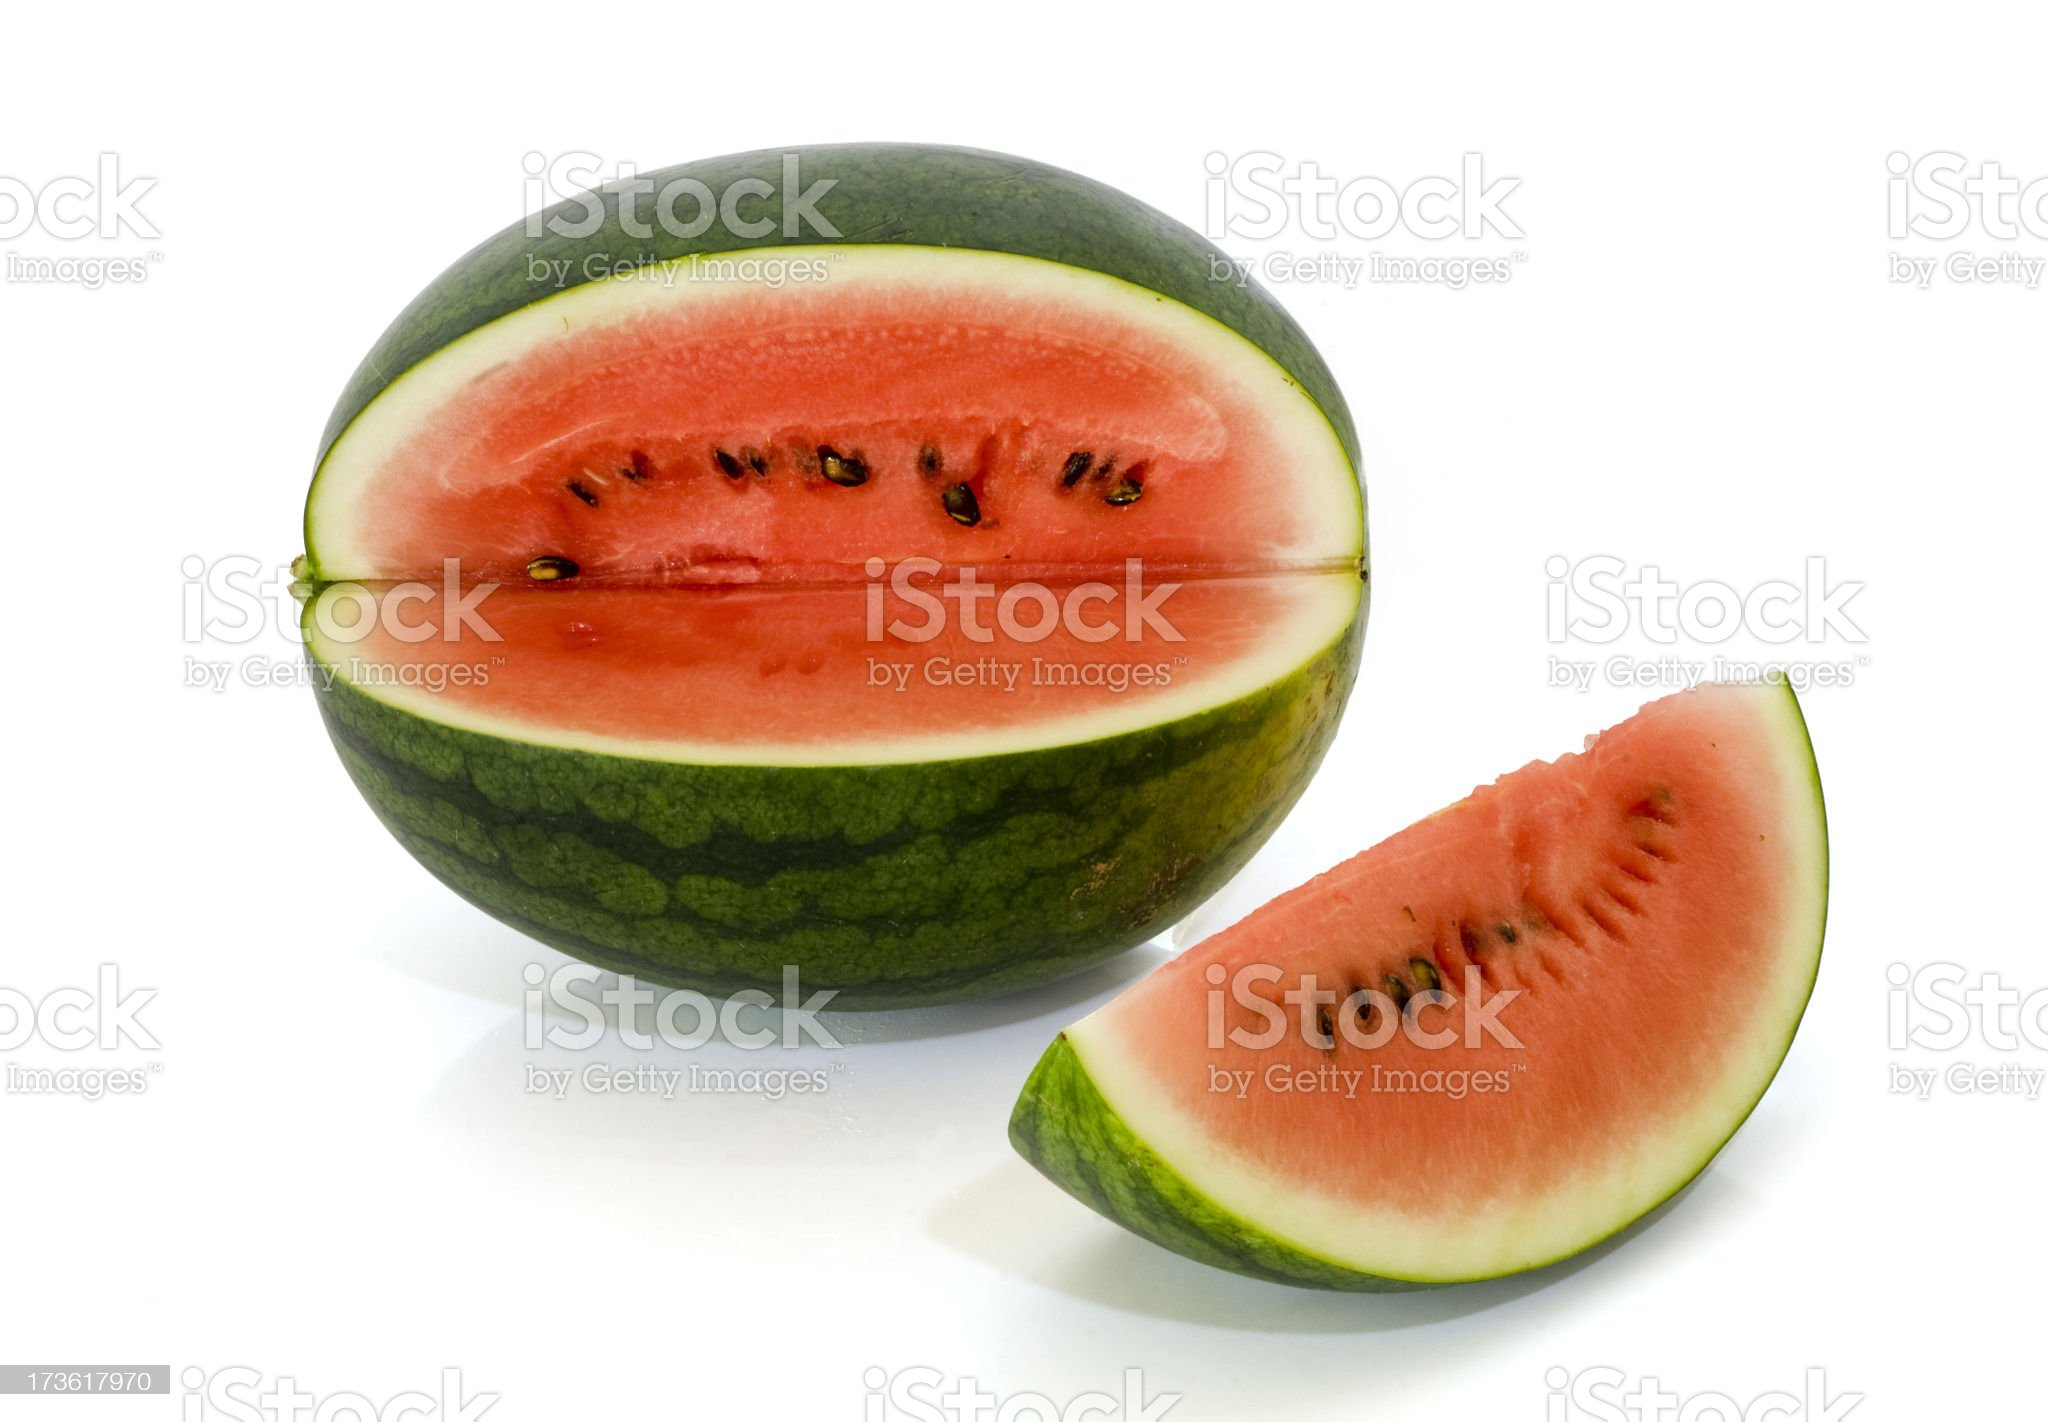 cut watermellon (Clipping Path) royalty-free stock photo